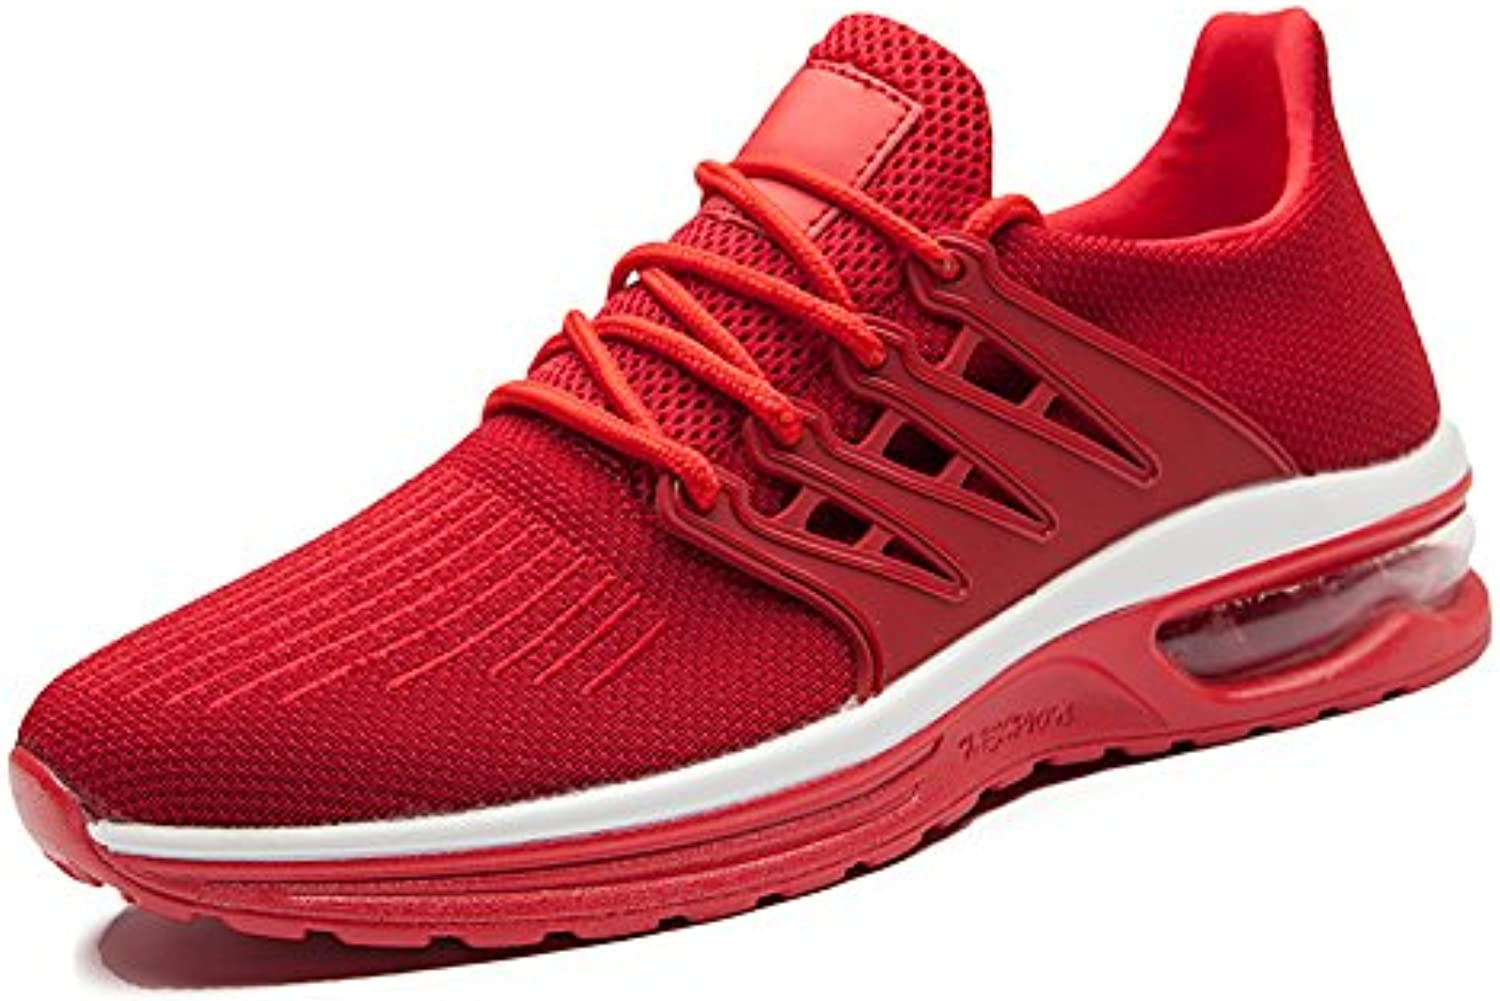 Toptak Herren Low Top Laufschuhe Athletic Walking Sport Fitness Schuhe Rot